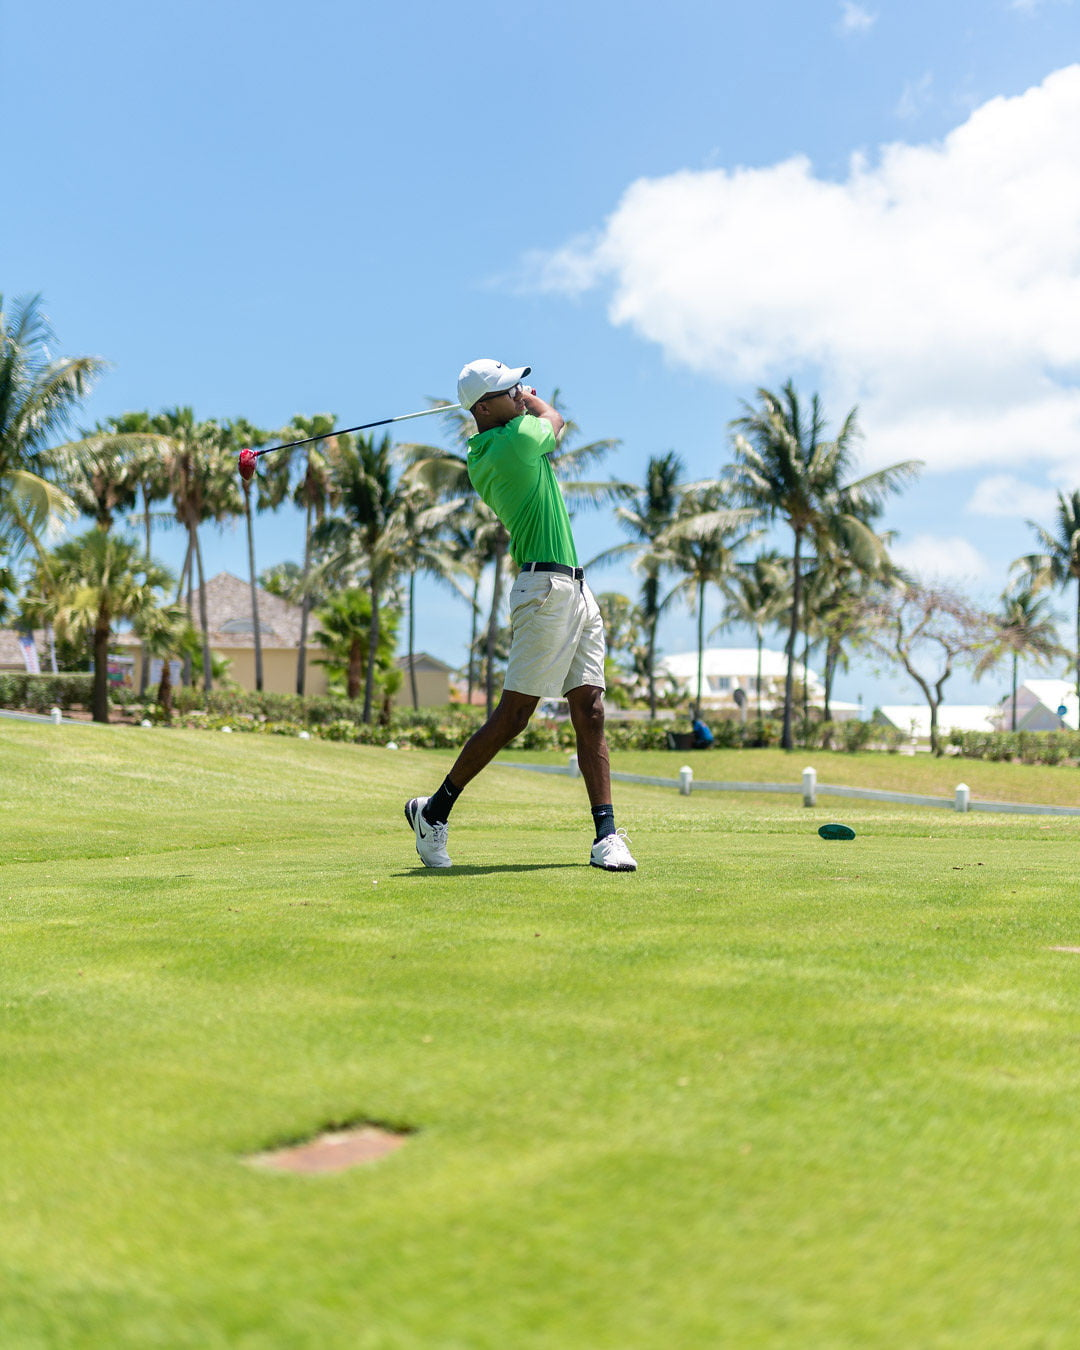 33rd annual Rotary Club of East Nassau & Scout Association Golf tournament swings into fundraising success